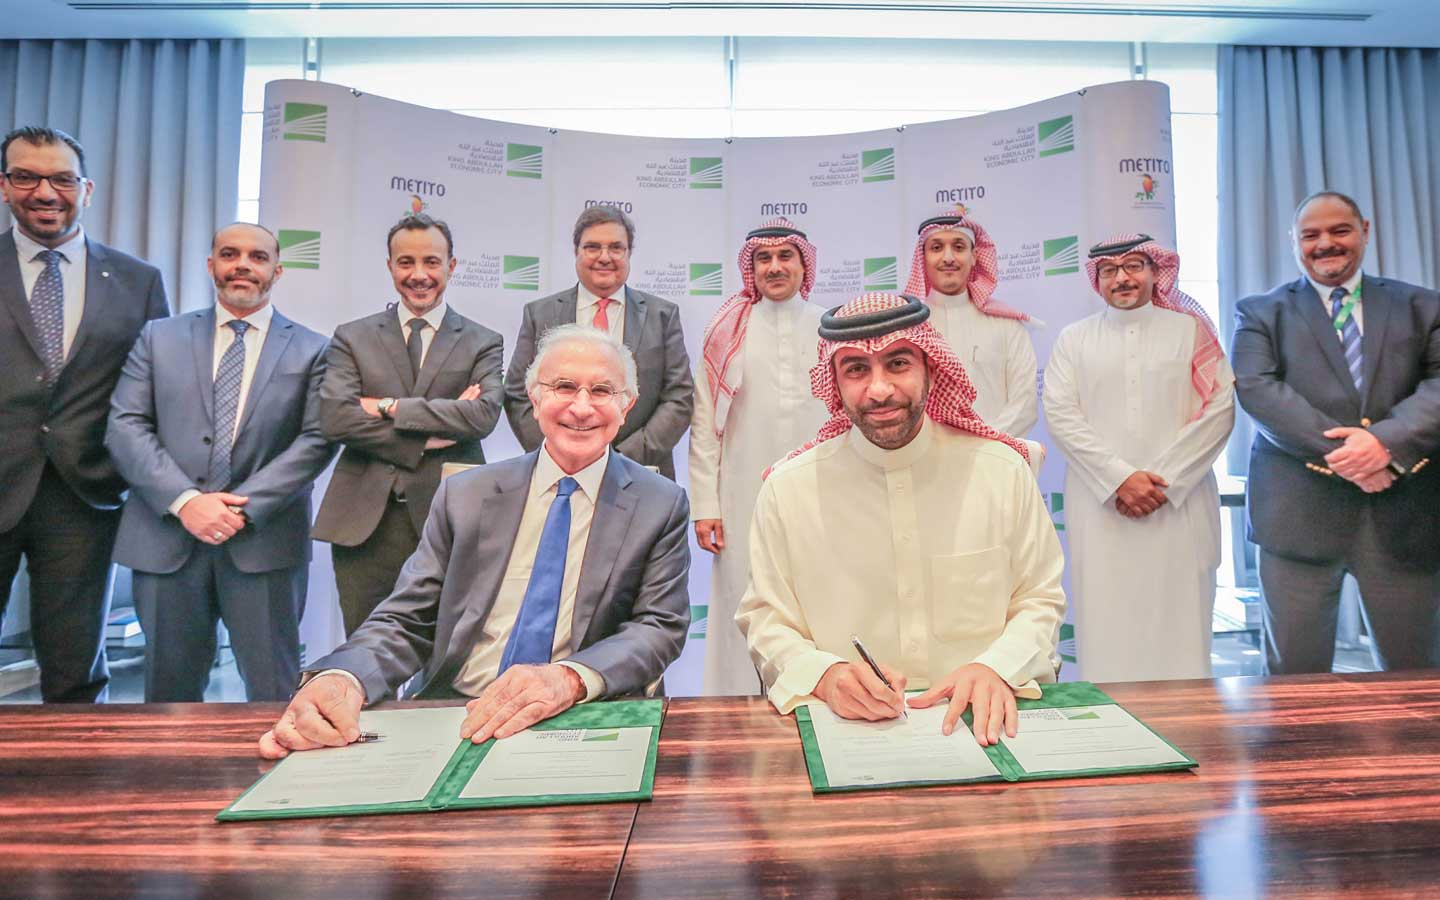 Metito signs a project worth 220 Million Saudi Riyals to establish desalination plant and solar electricity generation in King Abdullah Economic City